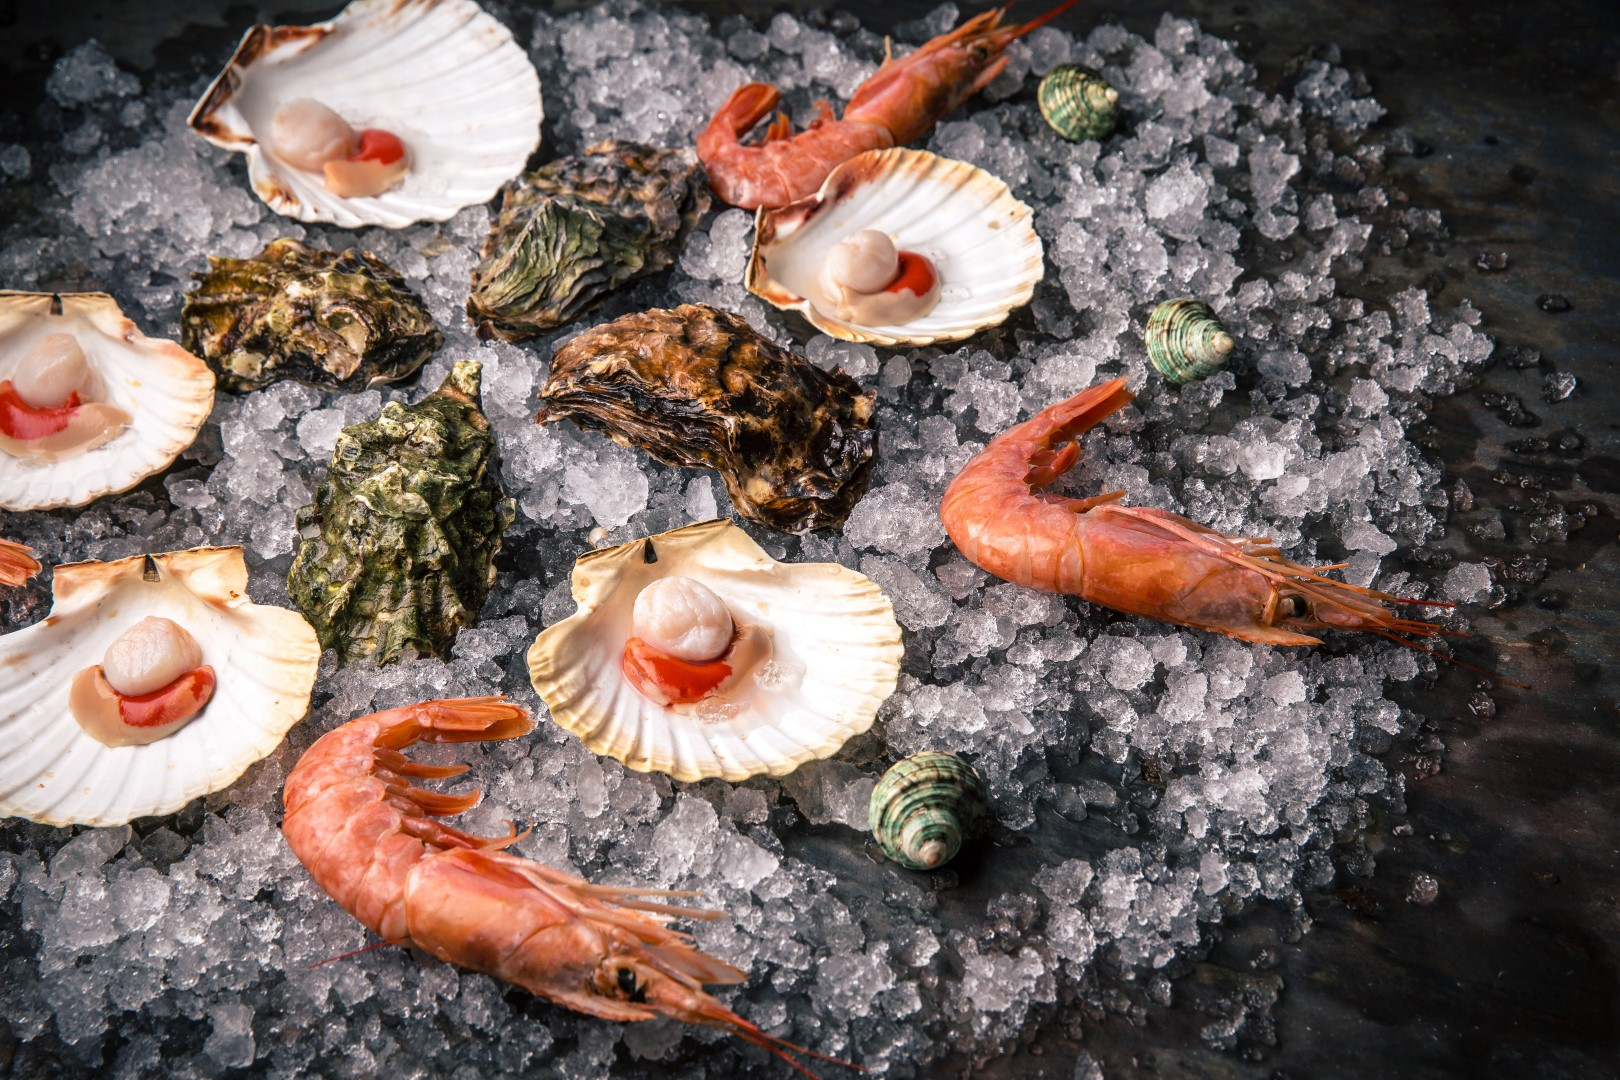 Scallops_Langoustines_Shrimps_Oysters_Mussels